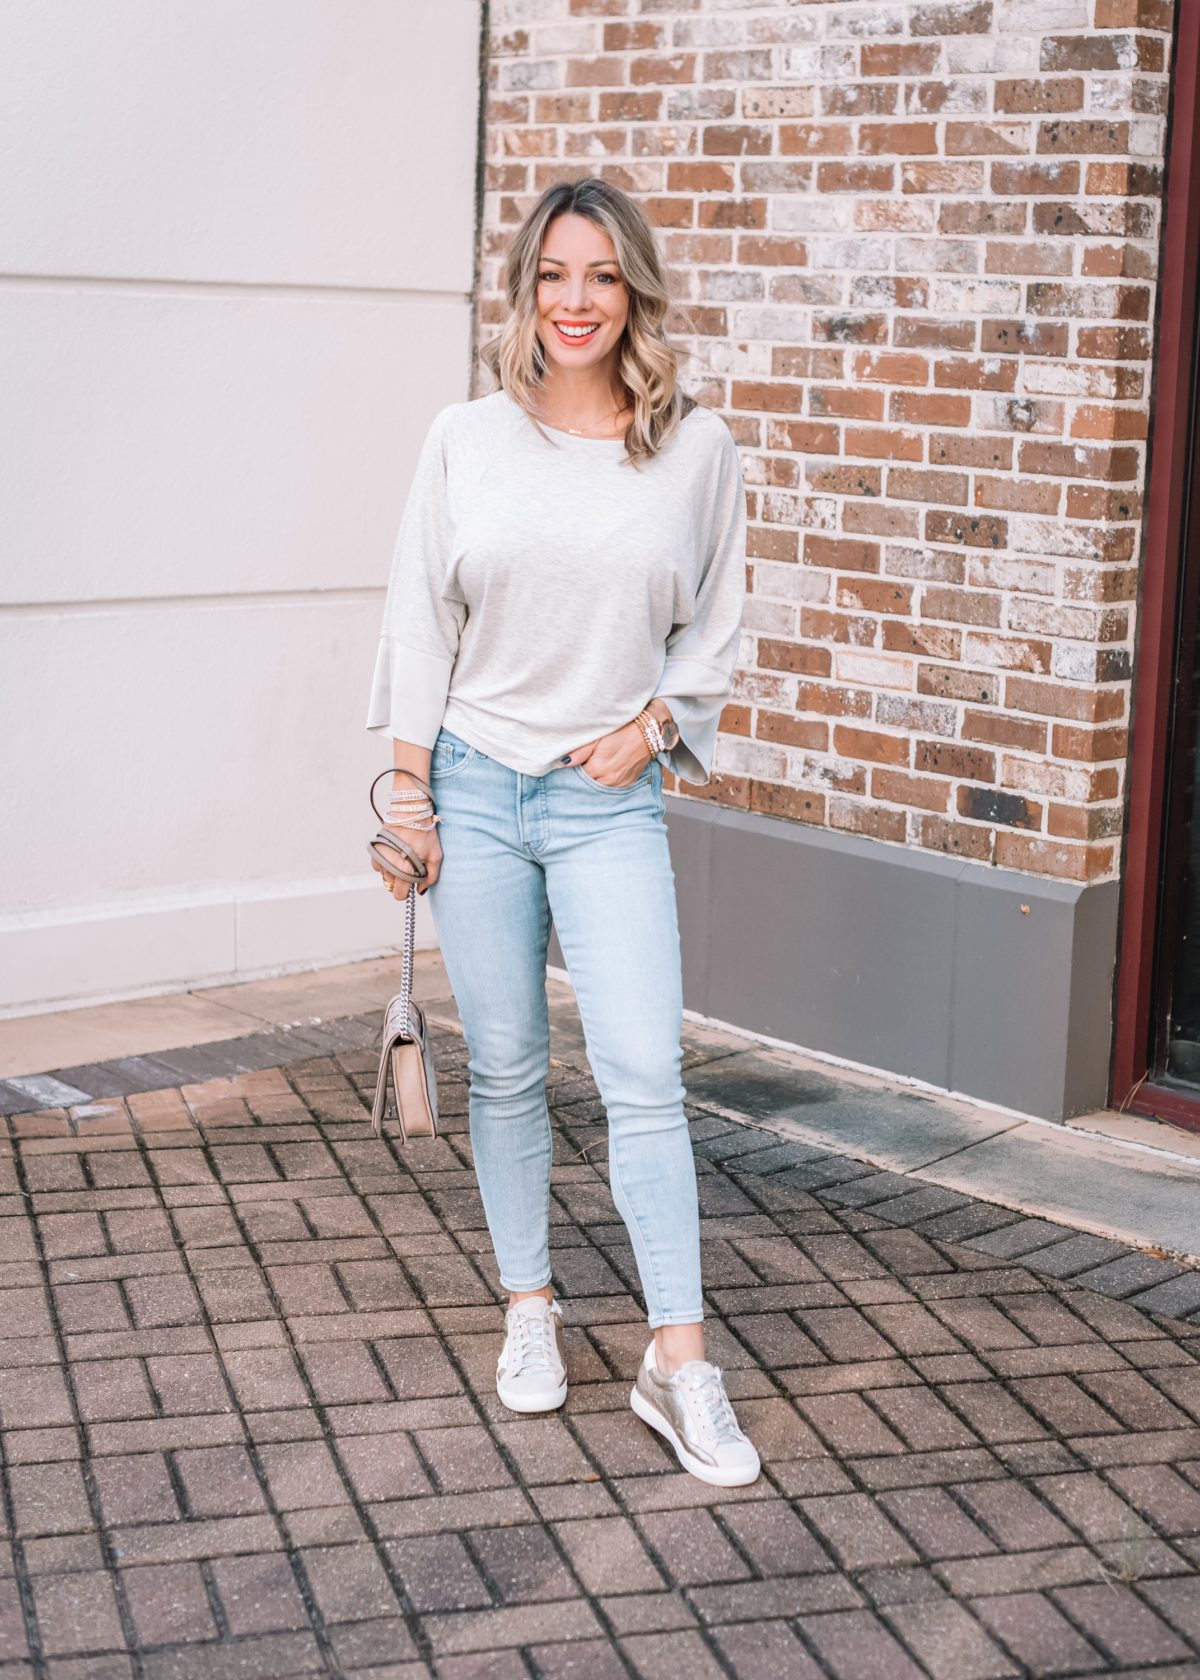 Express Fashion, Gray Tee, Jeans, Star Sneakers